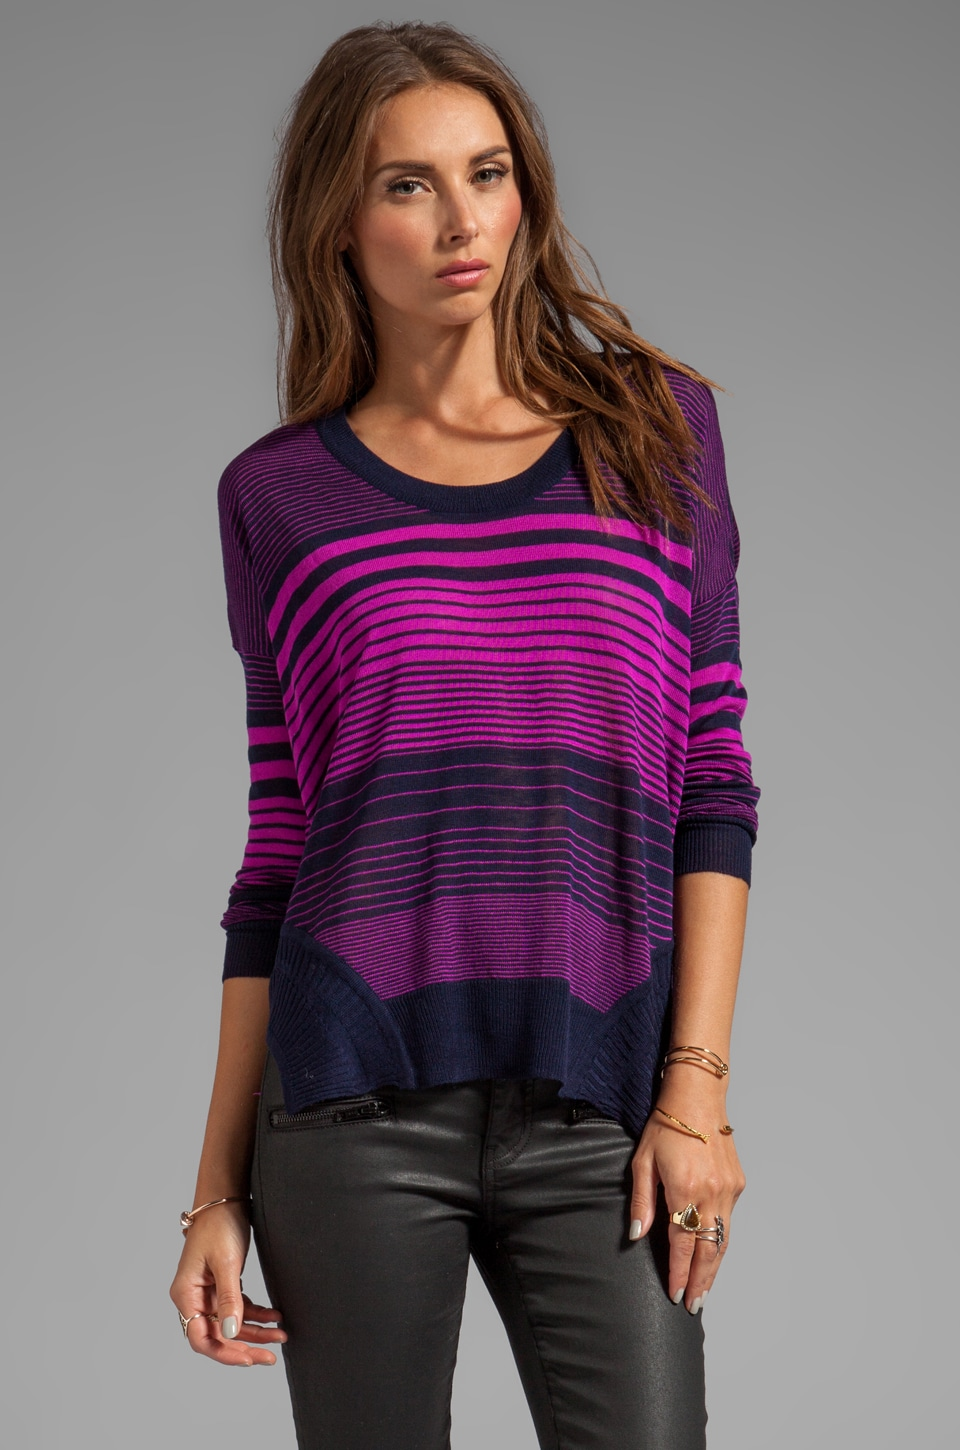 John & Jenn by Line Cait Striped Sweater in Pink Thrill